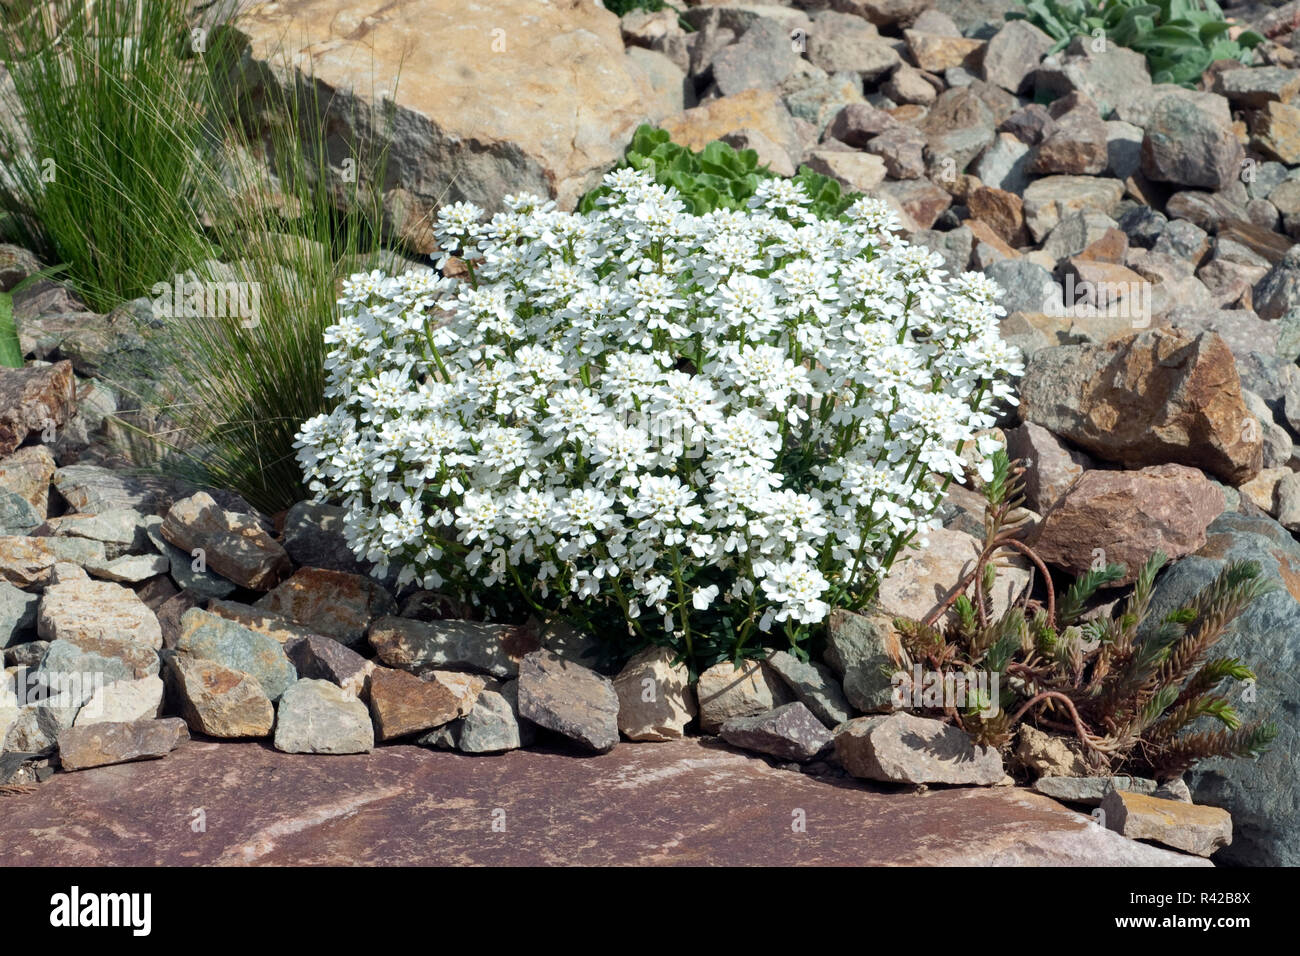 Schleifenblume, Iberis, sempervierens Stock Photo